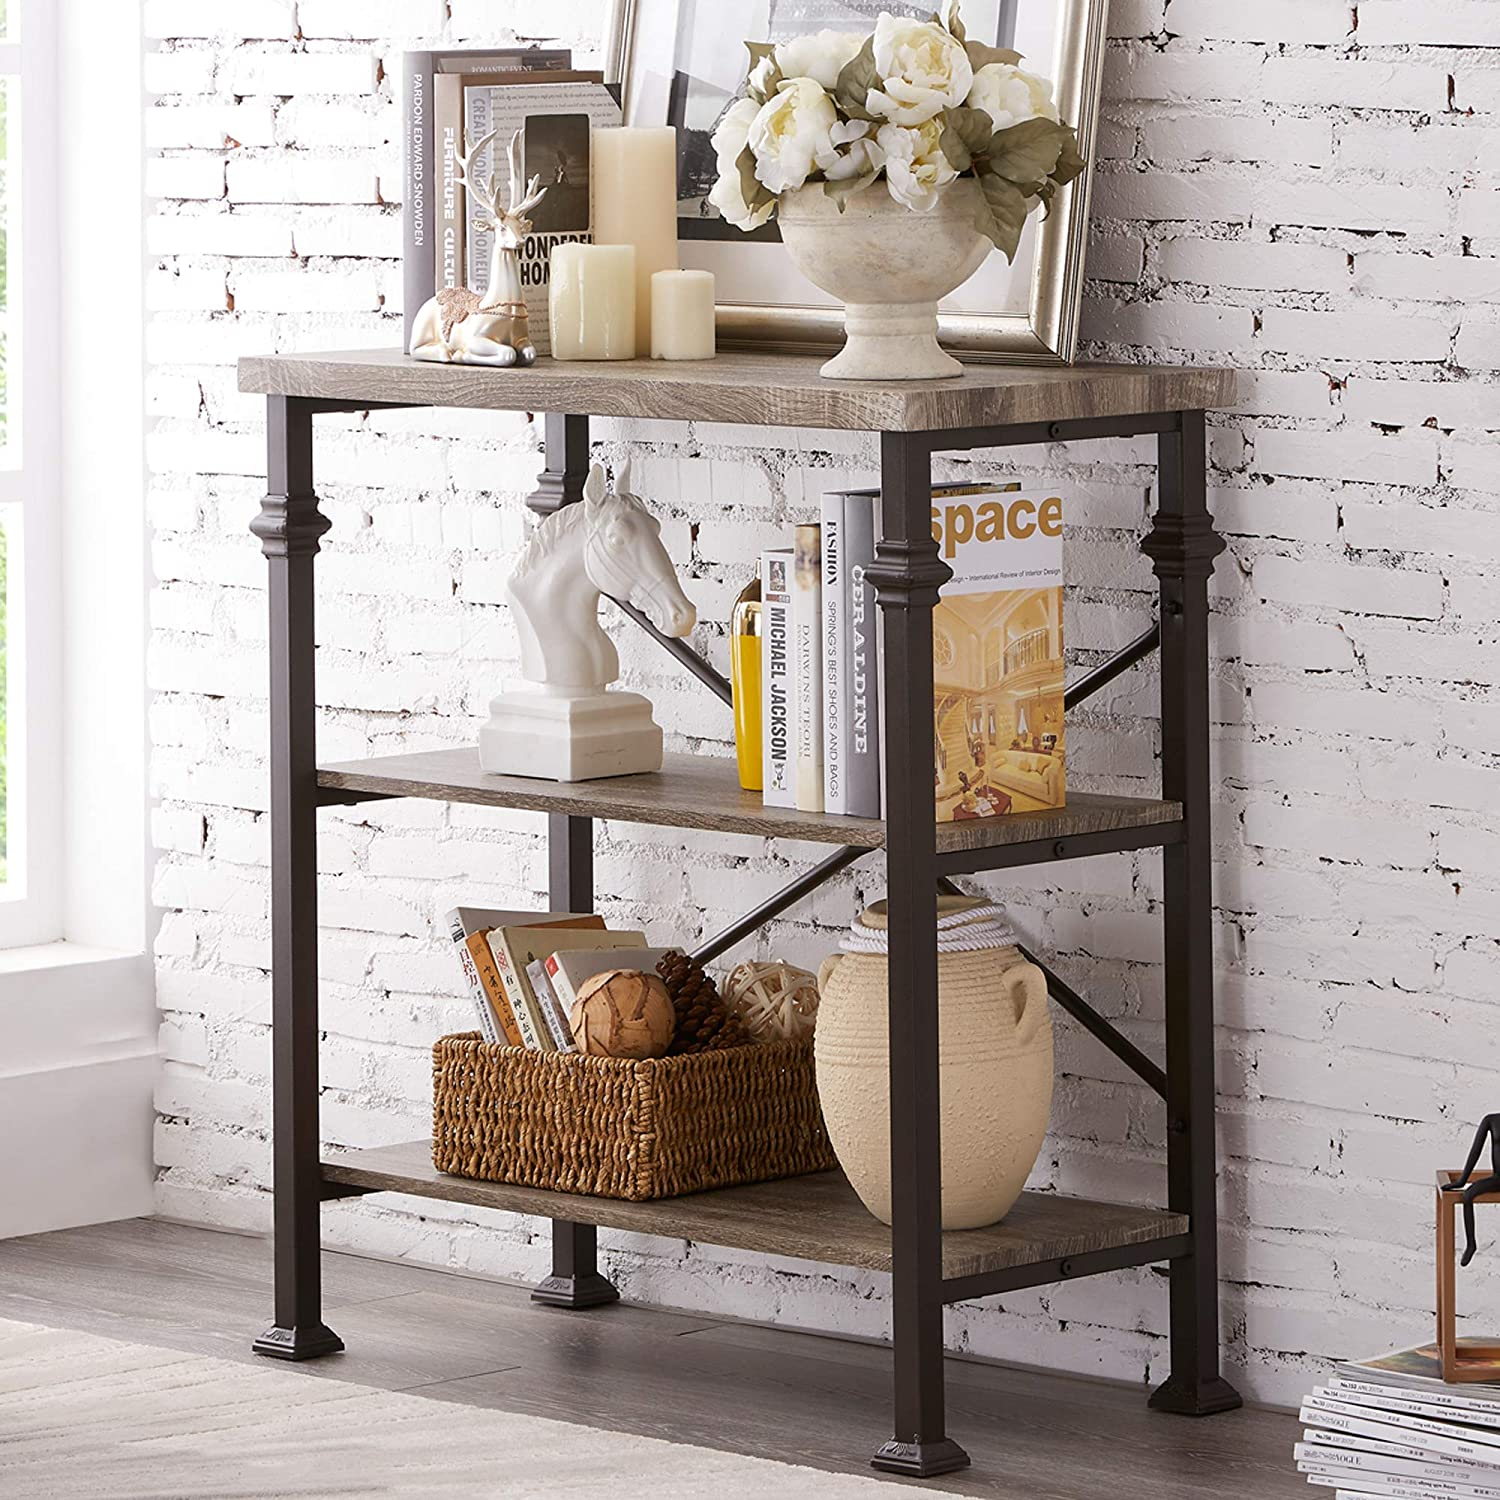 Image of Hombazaar 3-Tier Bookshelf, Rustic Industrial Style Bookcase Furniture, Free Standing Storage Shelves for Living Room Bedroom and Kitchen, Grey Oak Home and Kitchen